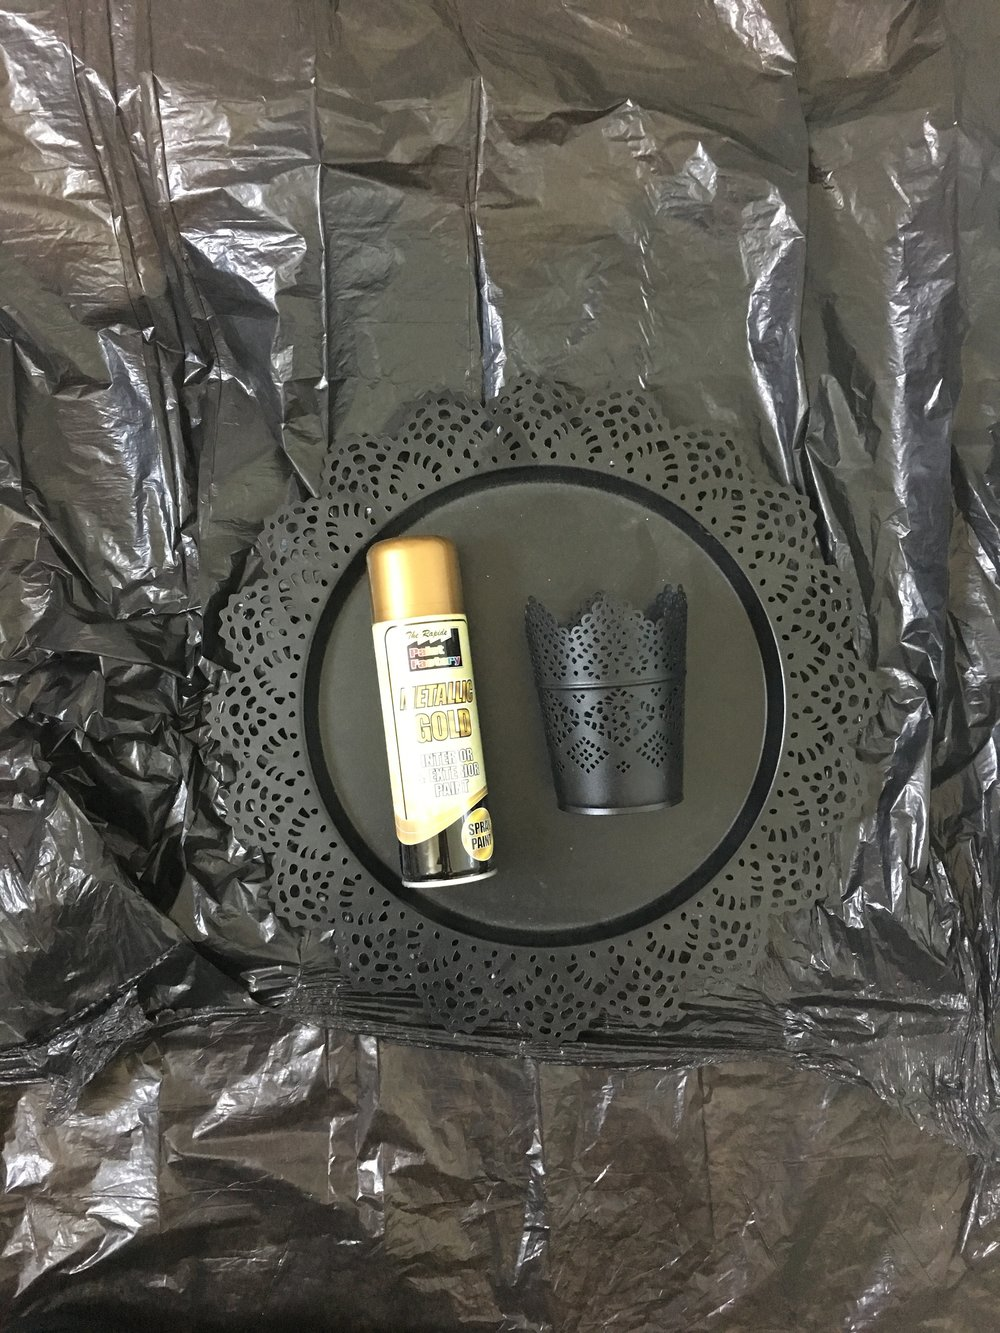 use metallic gold spray paint - spray at a safe distance of (i dunno) and spray evenly over the surface - i mean its not rocket science!